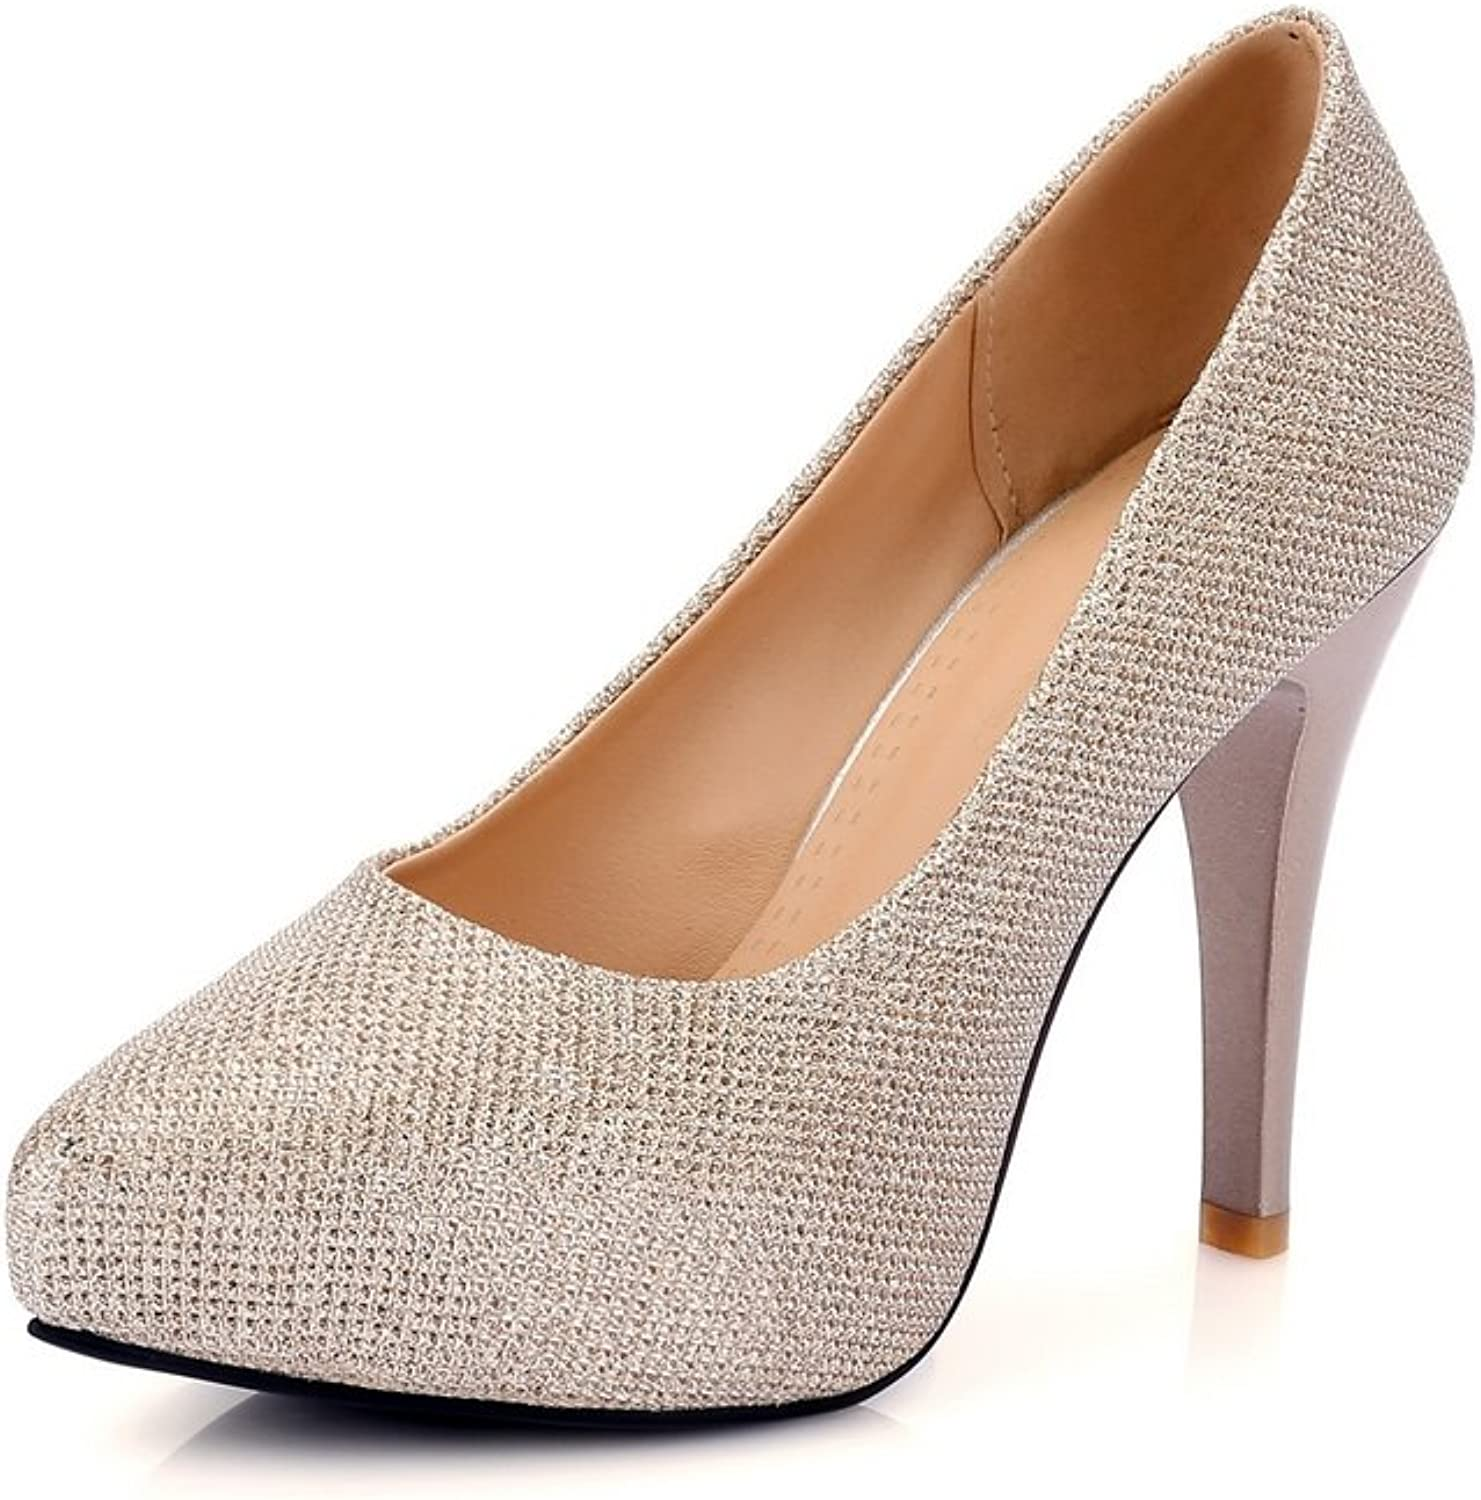 1TO9 Ladies Low-Cut Uppers Pull-On gold Imitated Suede Pumps-shoes - 7 B(M) US